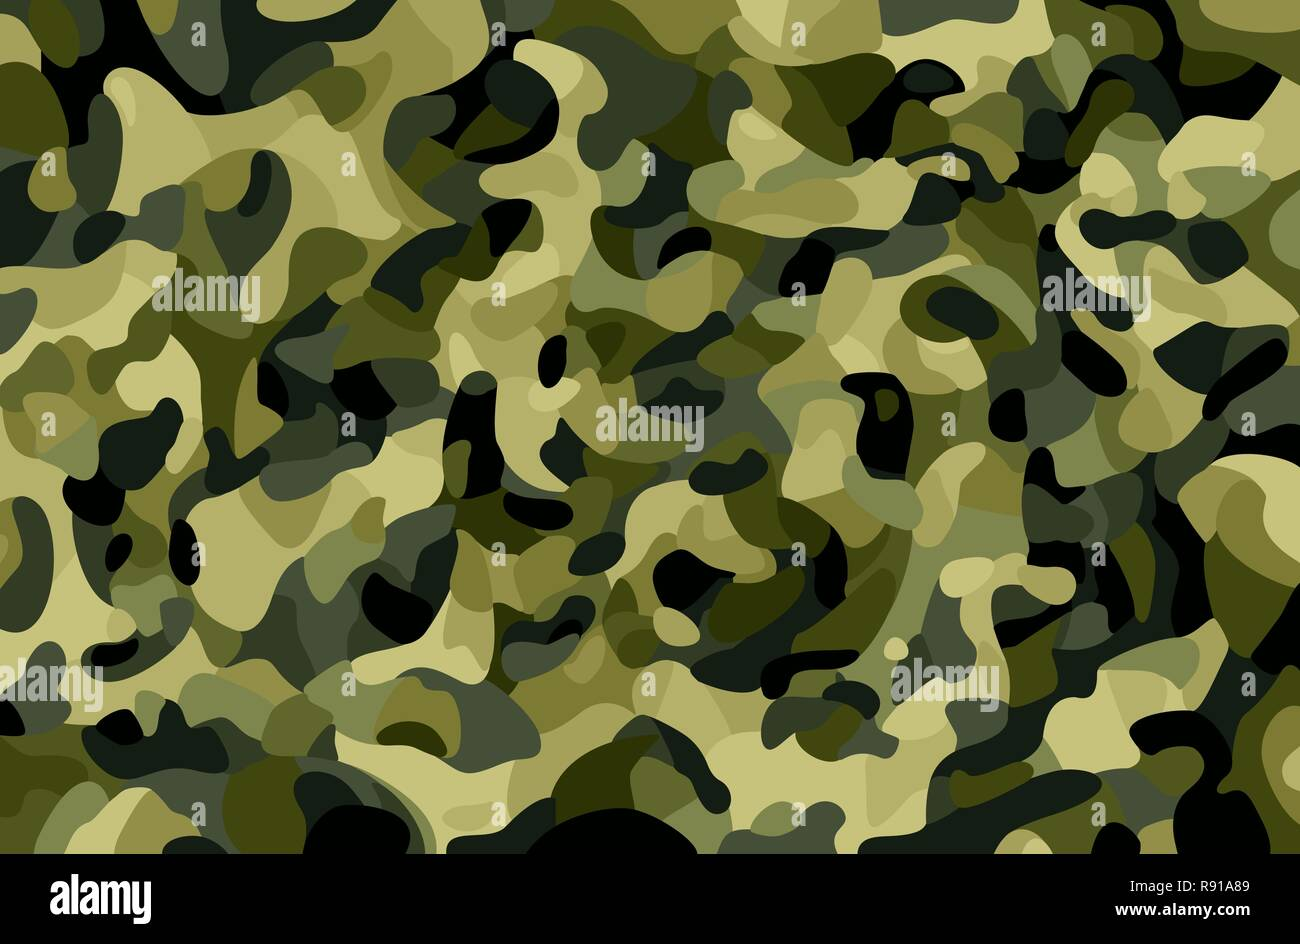 Camouflage background. Green, brown, black, olive colors forest texture. Trendy style camo. Print. Military Theme. Vector illustration. - Stock Image